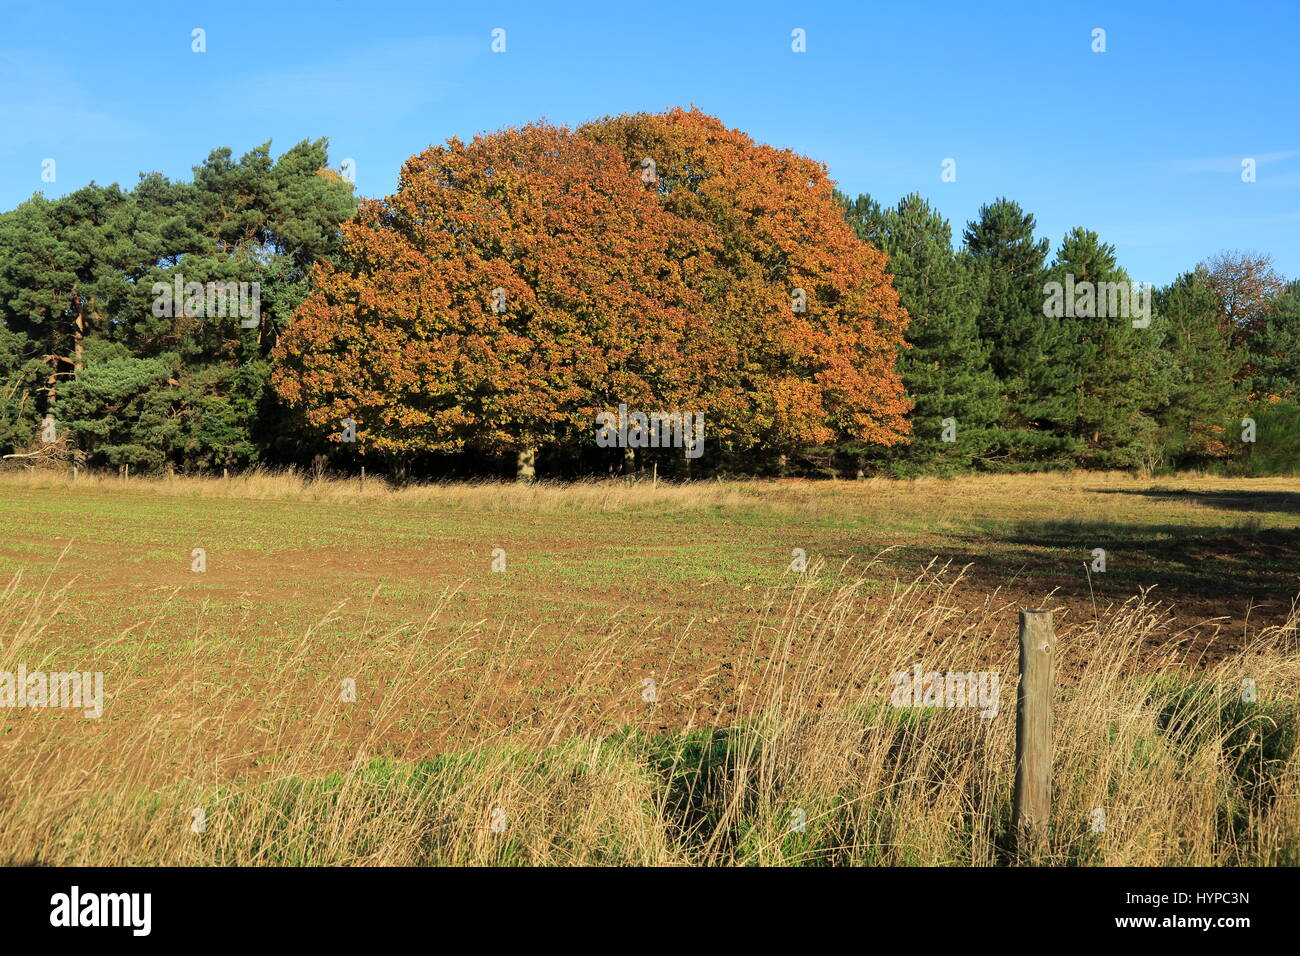 Autumn colours trees in countryside, Sutton, Suffolk, England, UK - Stock Image